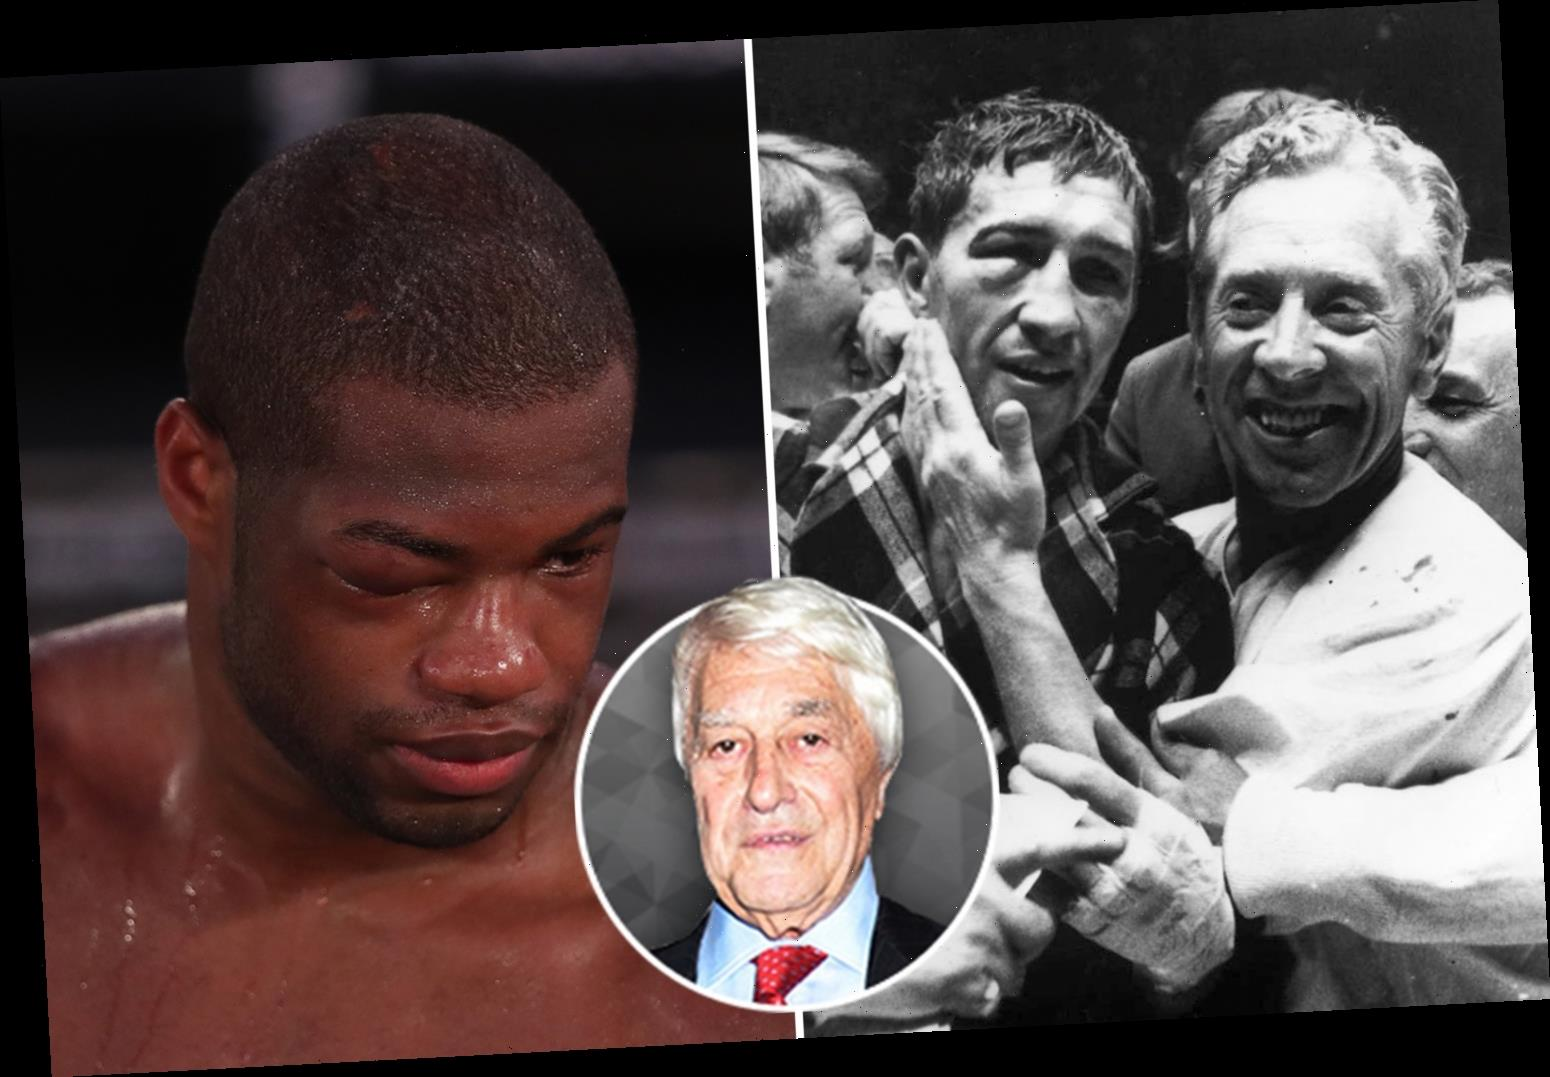 Daniel Dubois should watch greats like Muhammad Ali and Ken Buchanan to see why he is being dubbed a 'quitter'